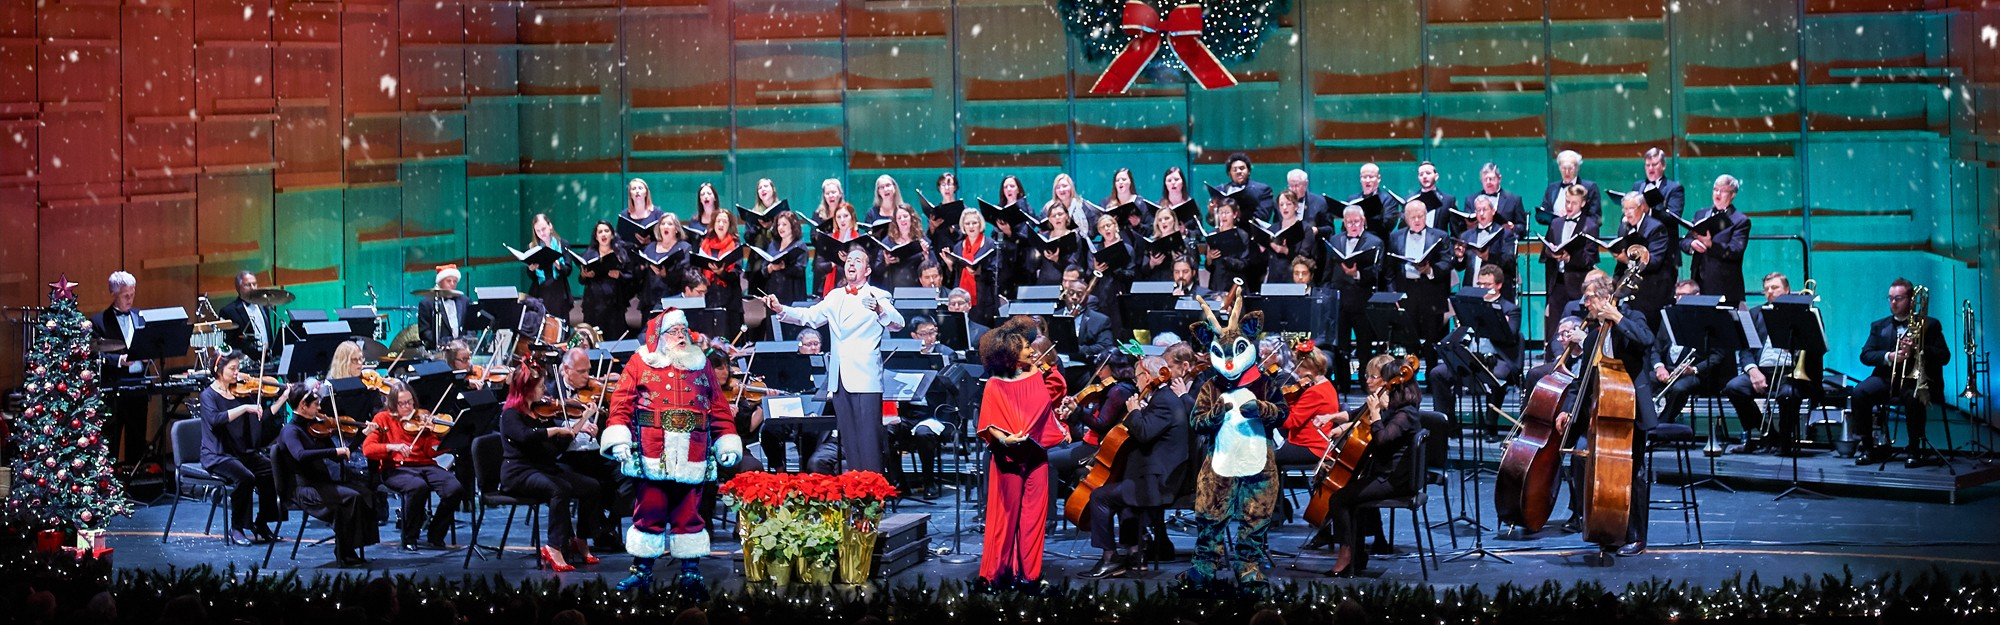 Memorable Christmas Services December 2020 Charlotte Making the Most of Magic of Christmas   Charlotte Symphony Orchestra